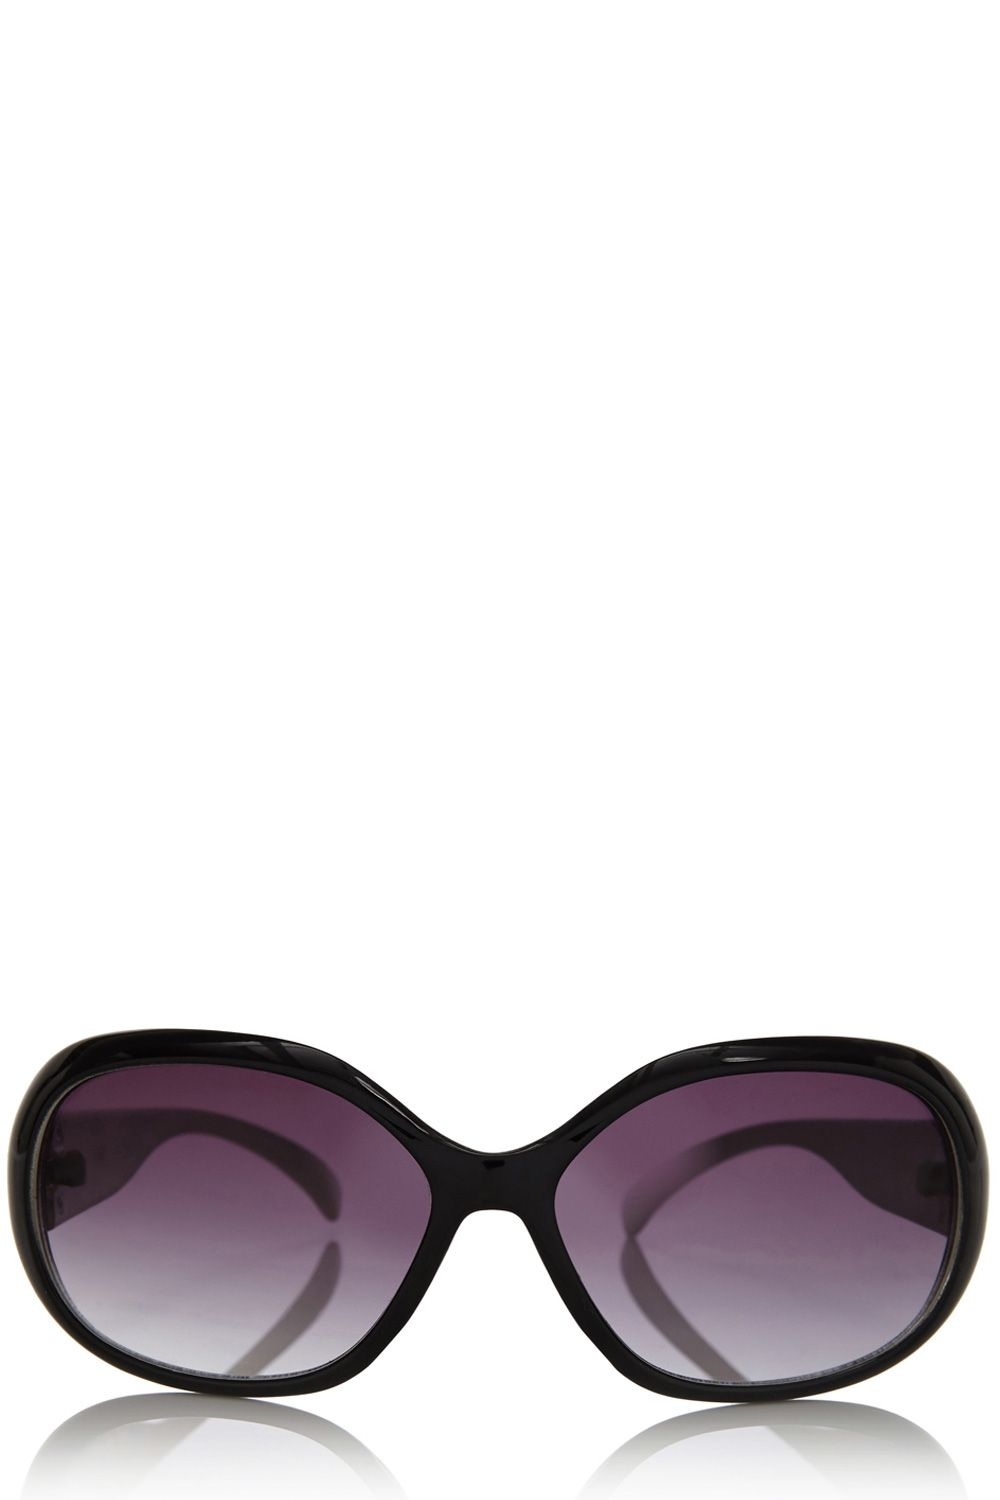 Quilted plastic arm sunglasses